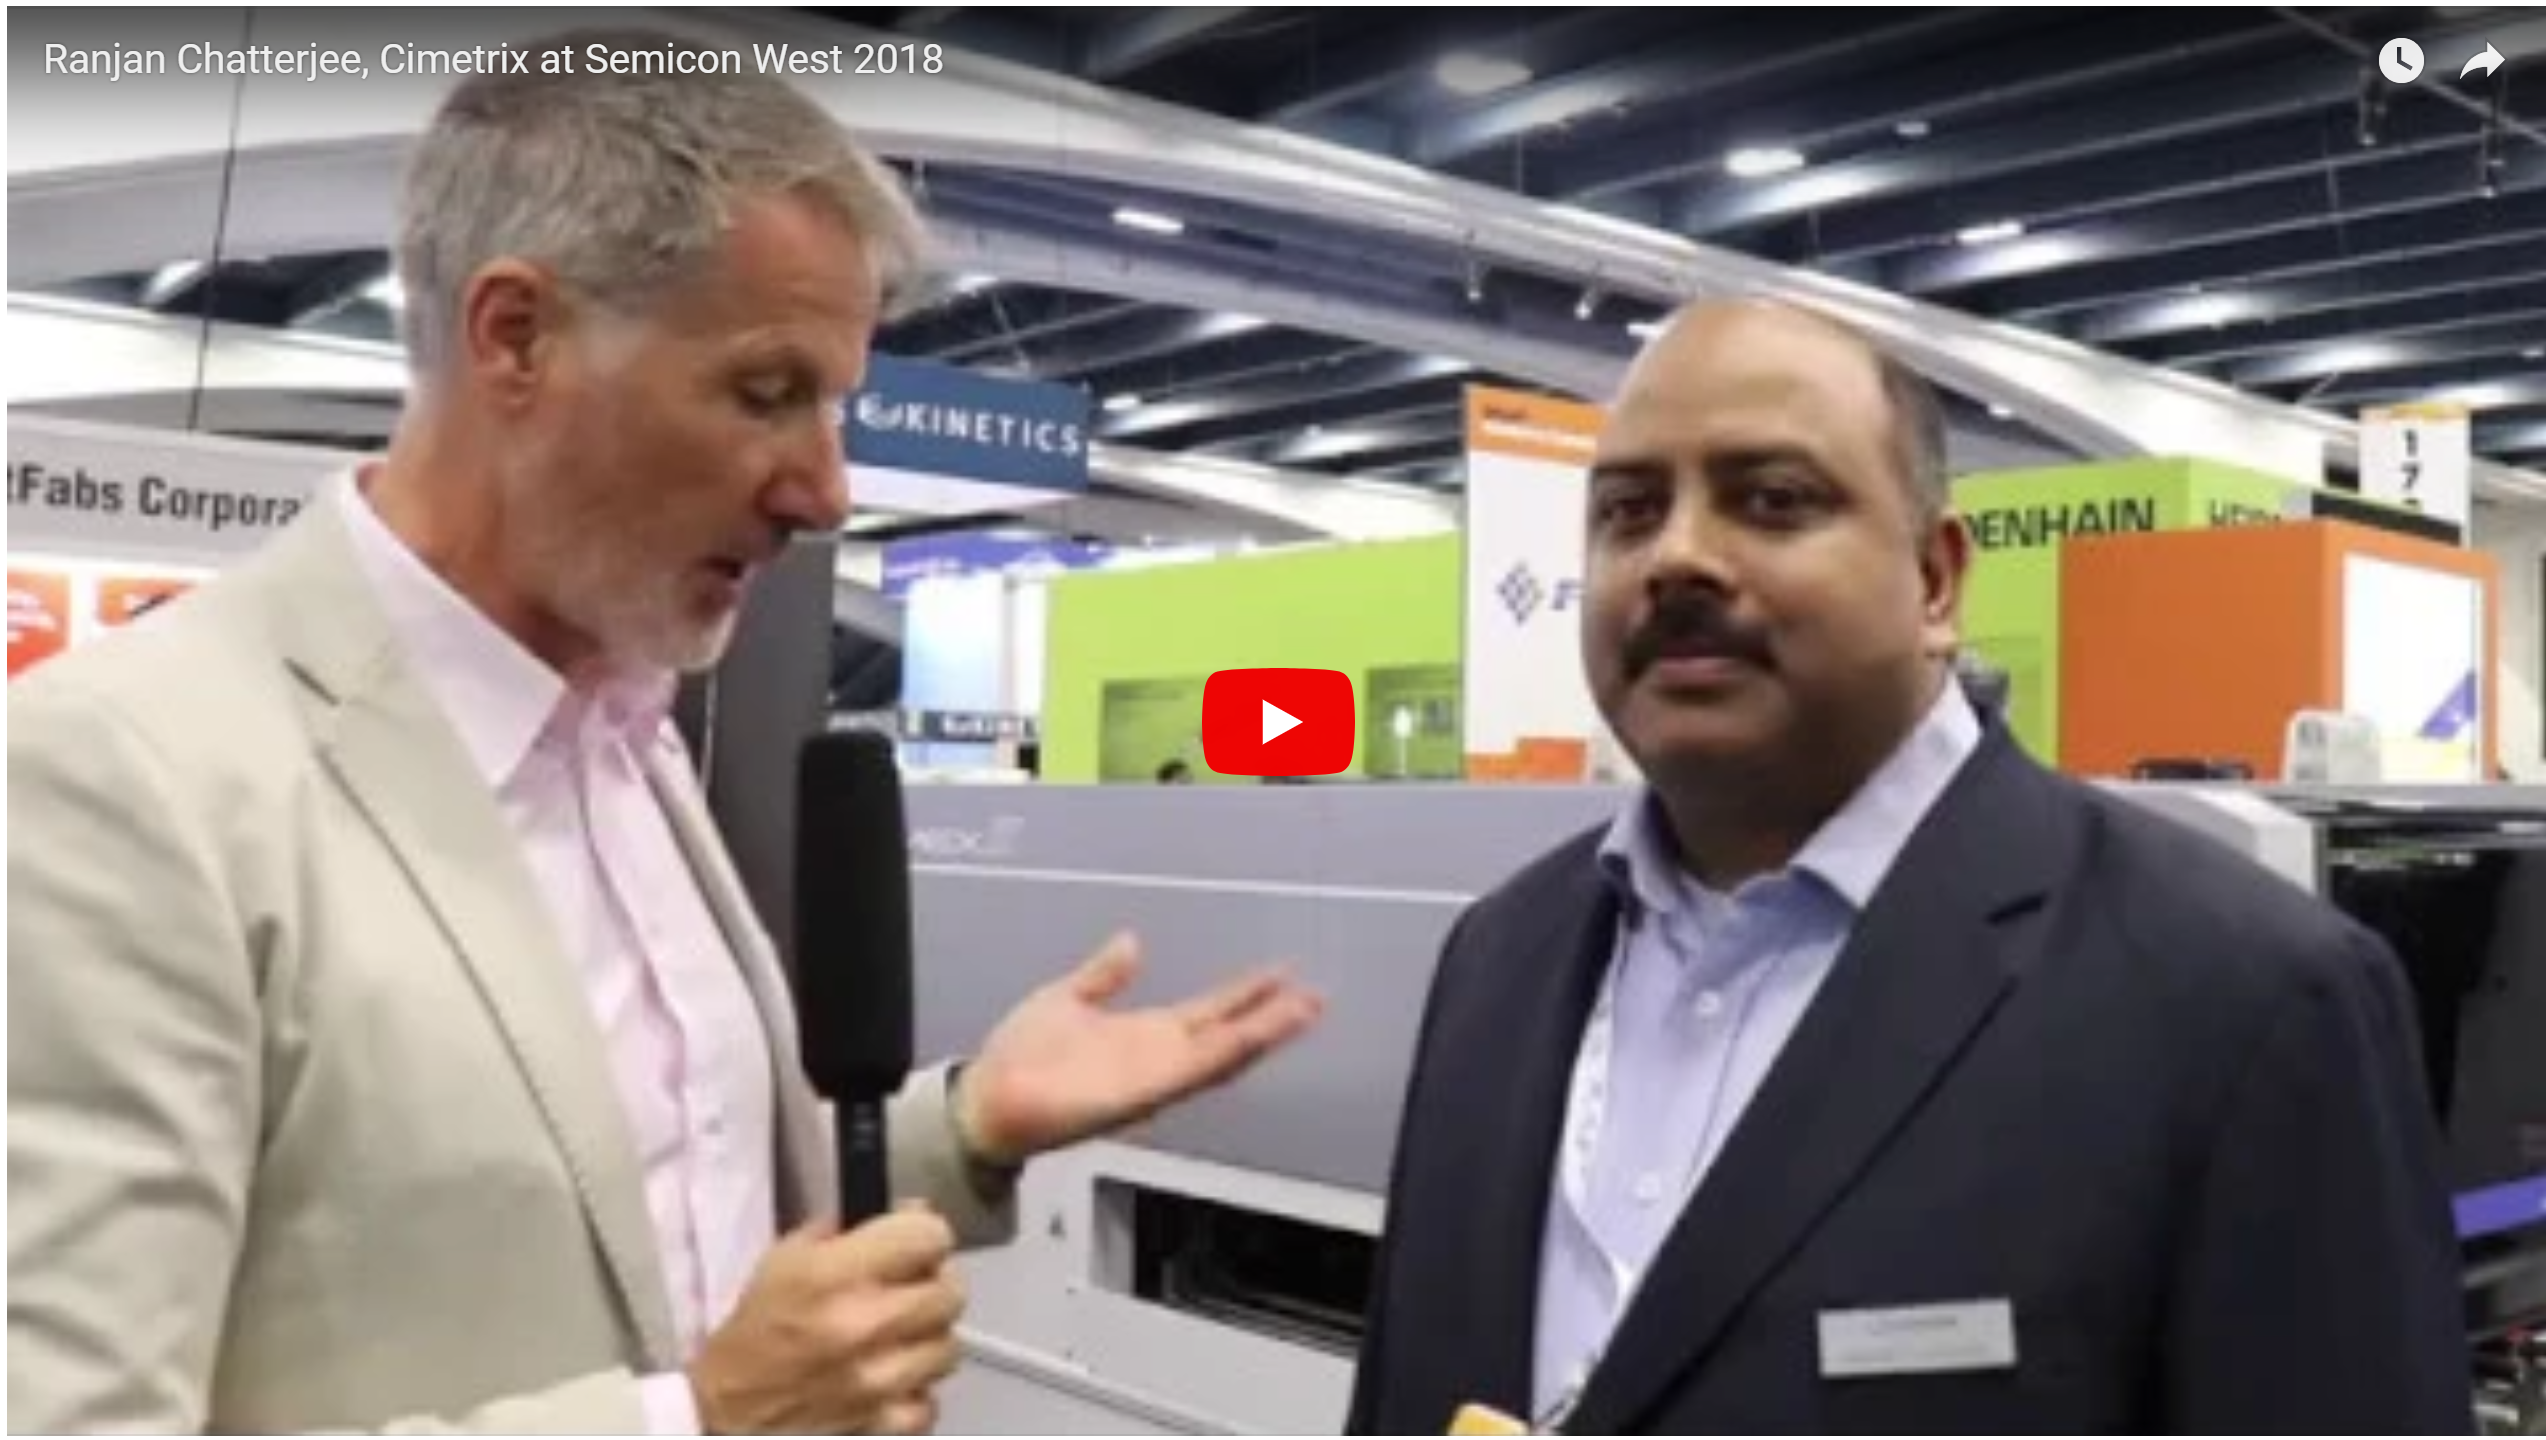 Ranjan Chatterjee, Vice President & General Manager, Smart Factory Business, Cimetrix at SEMICON West 2018